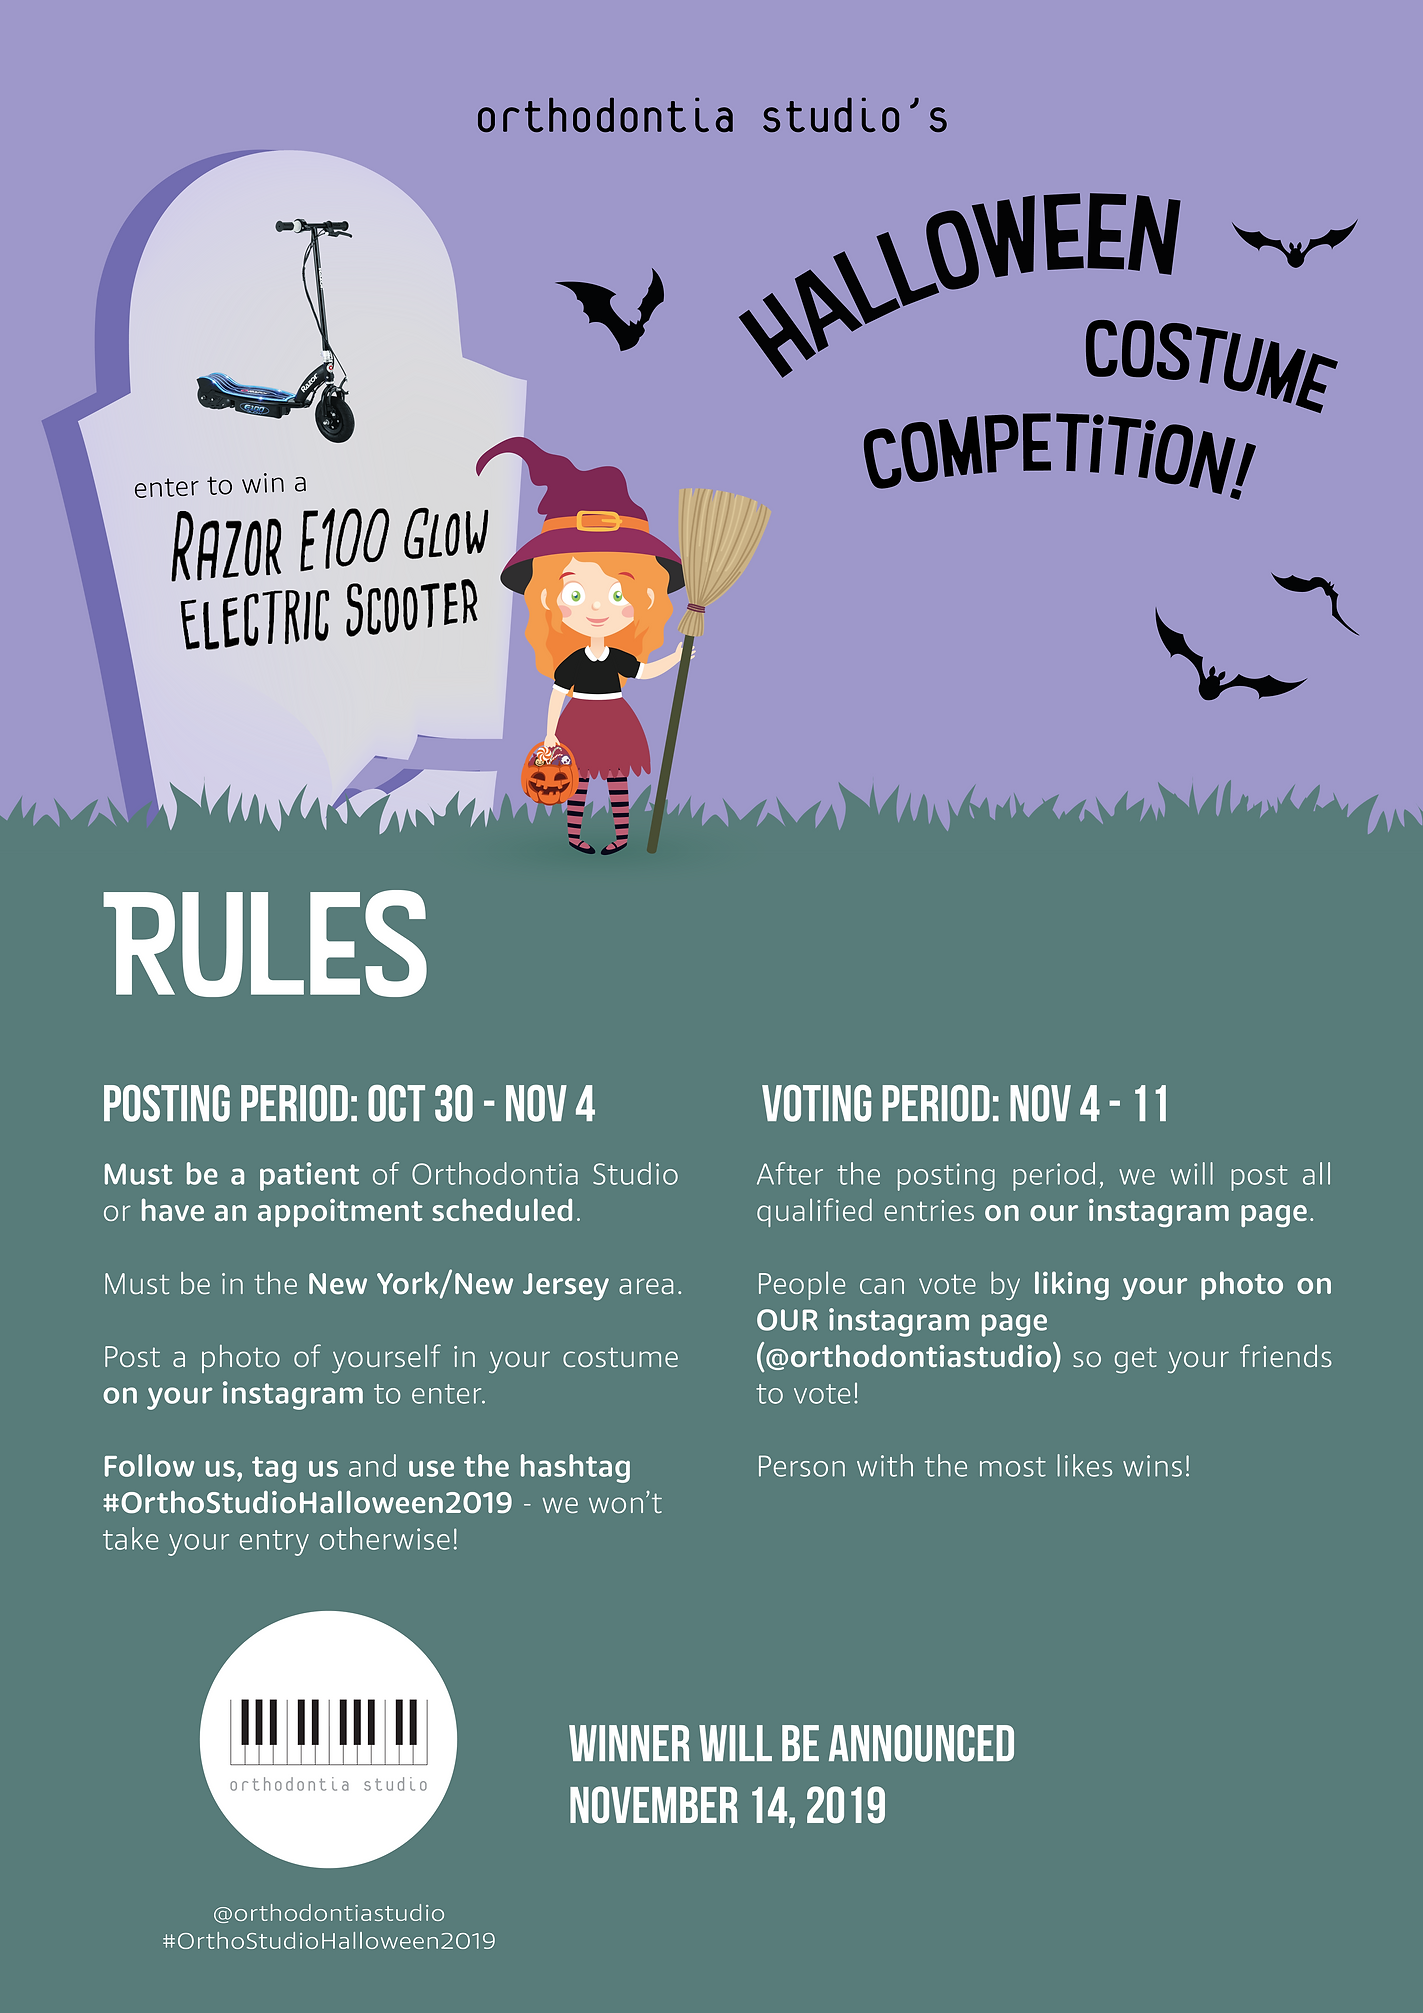 Halloween Costume Competition!